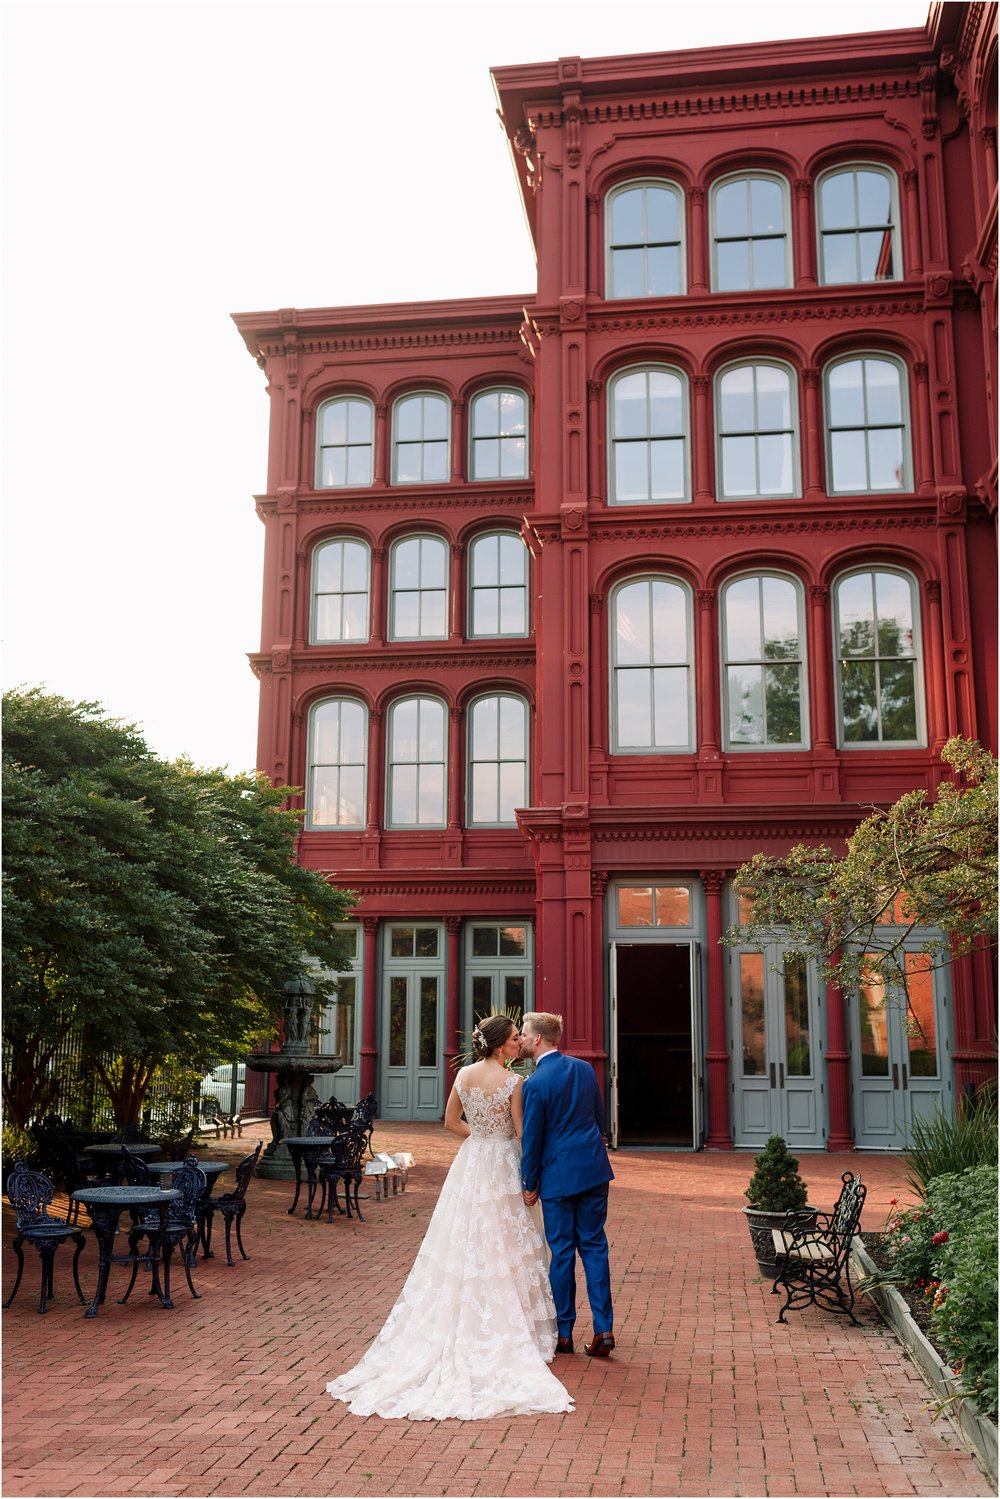 hannah leigh photography 1840s plaza wedding baltimore md_0093.jpg